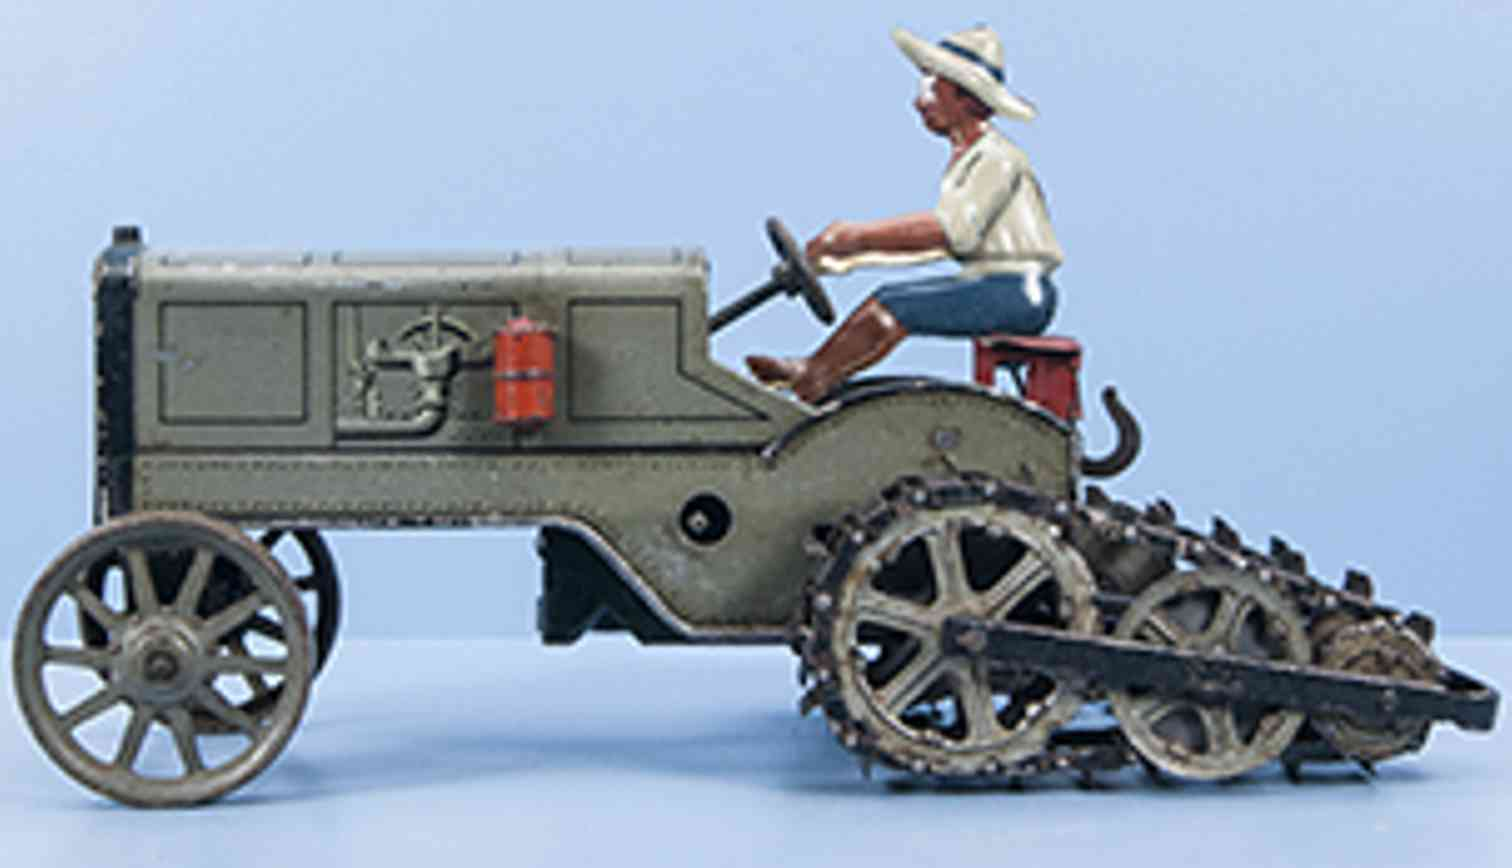 bing tin toy half-track tractor with driver figure gray